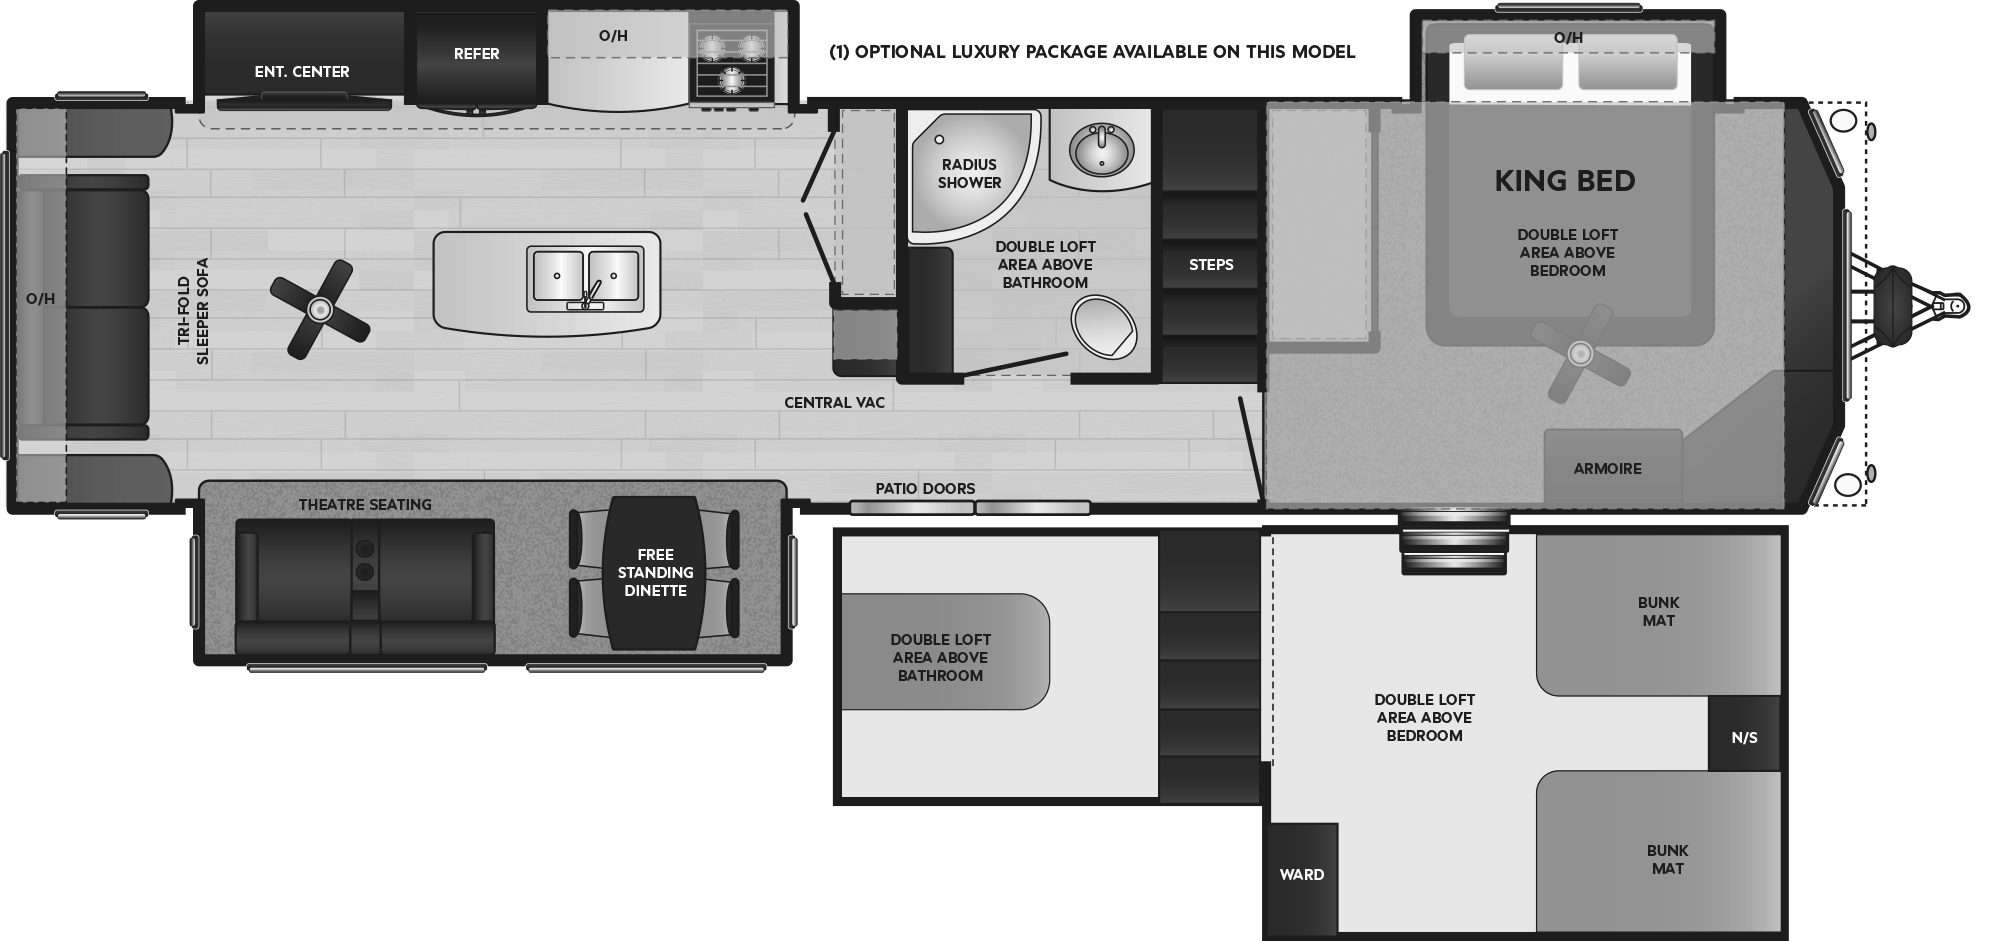 2021-Retreat-39FLFT-floorplan